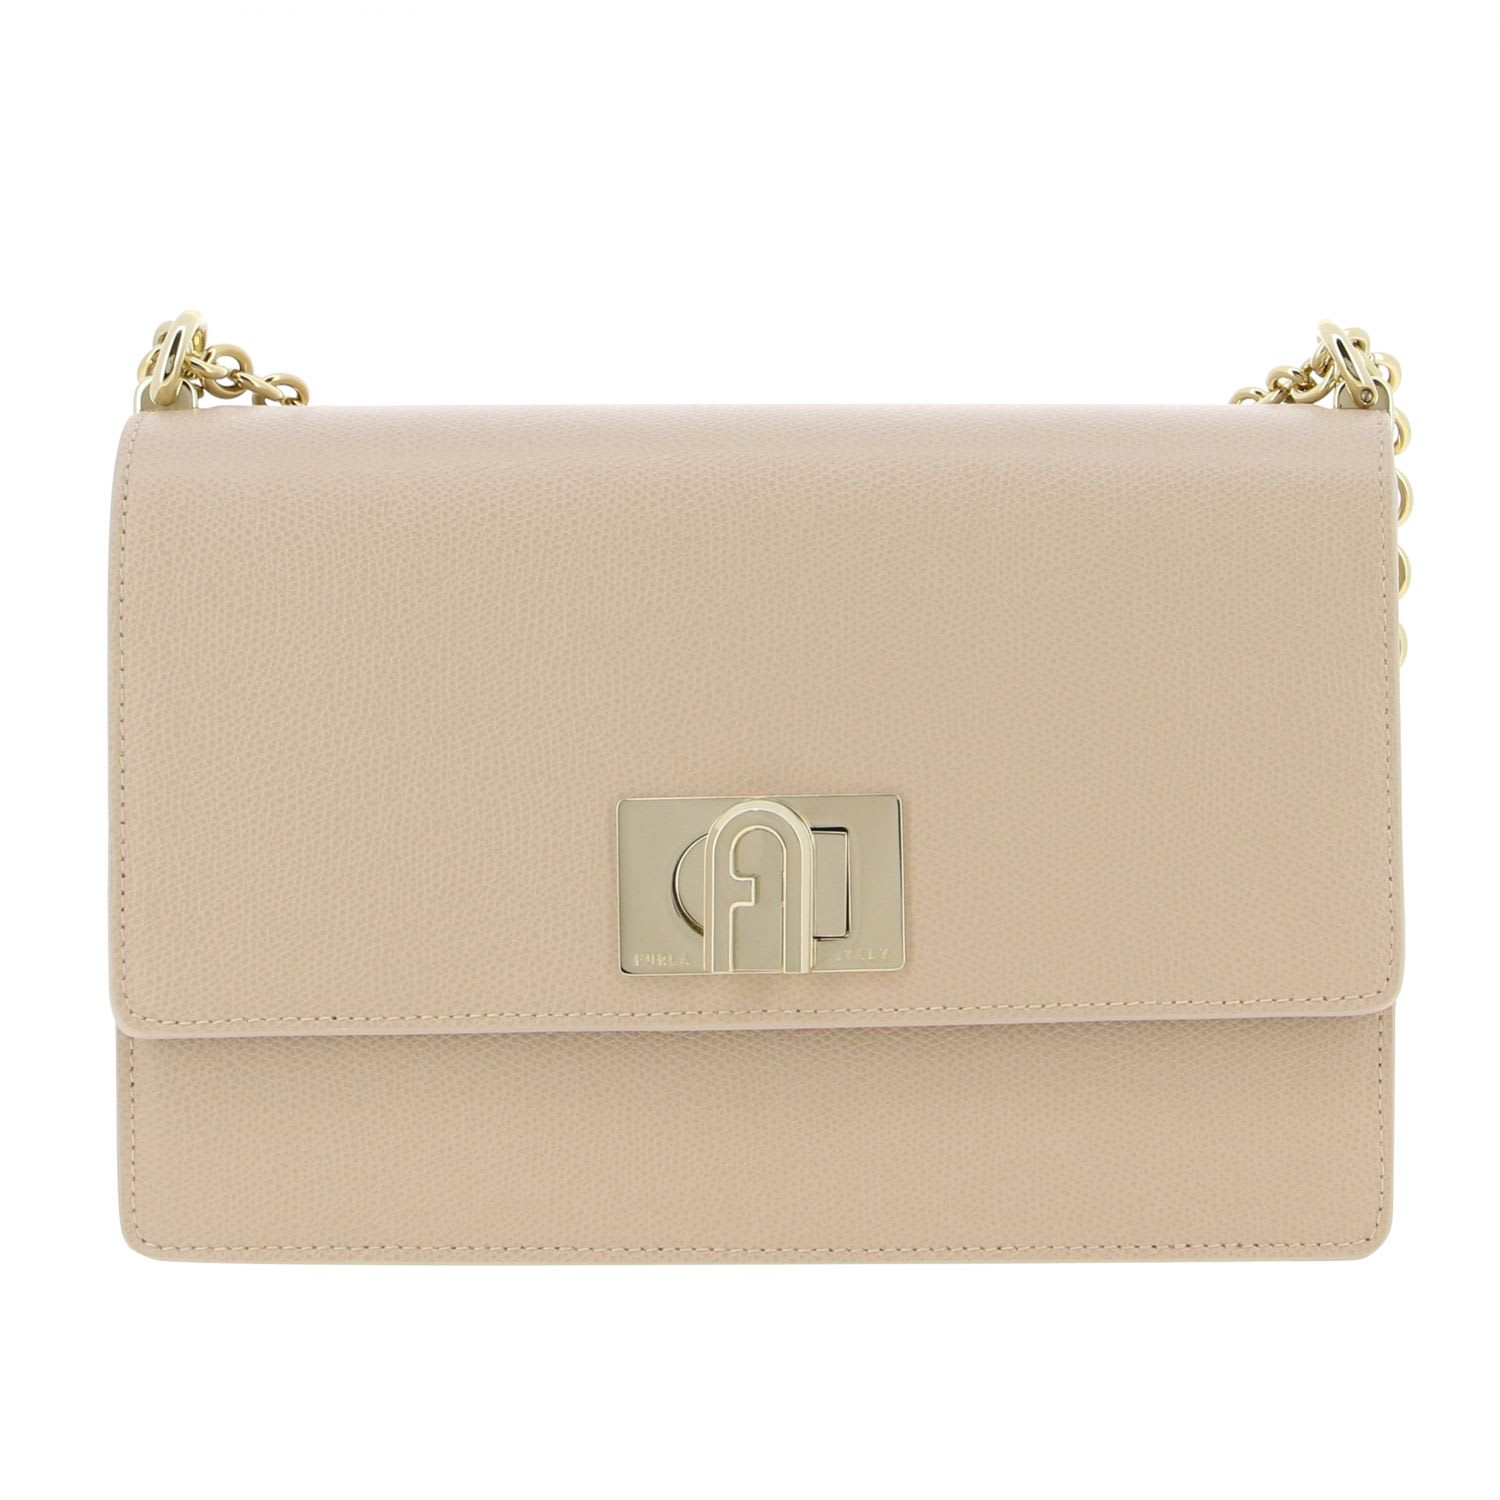 Furla Leather Bag In Pink